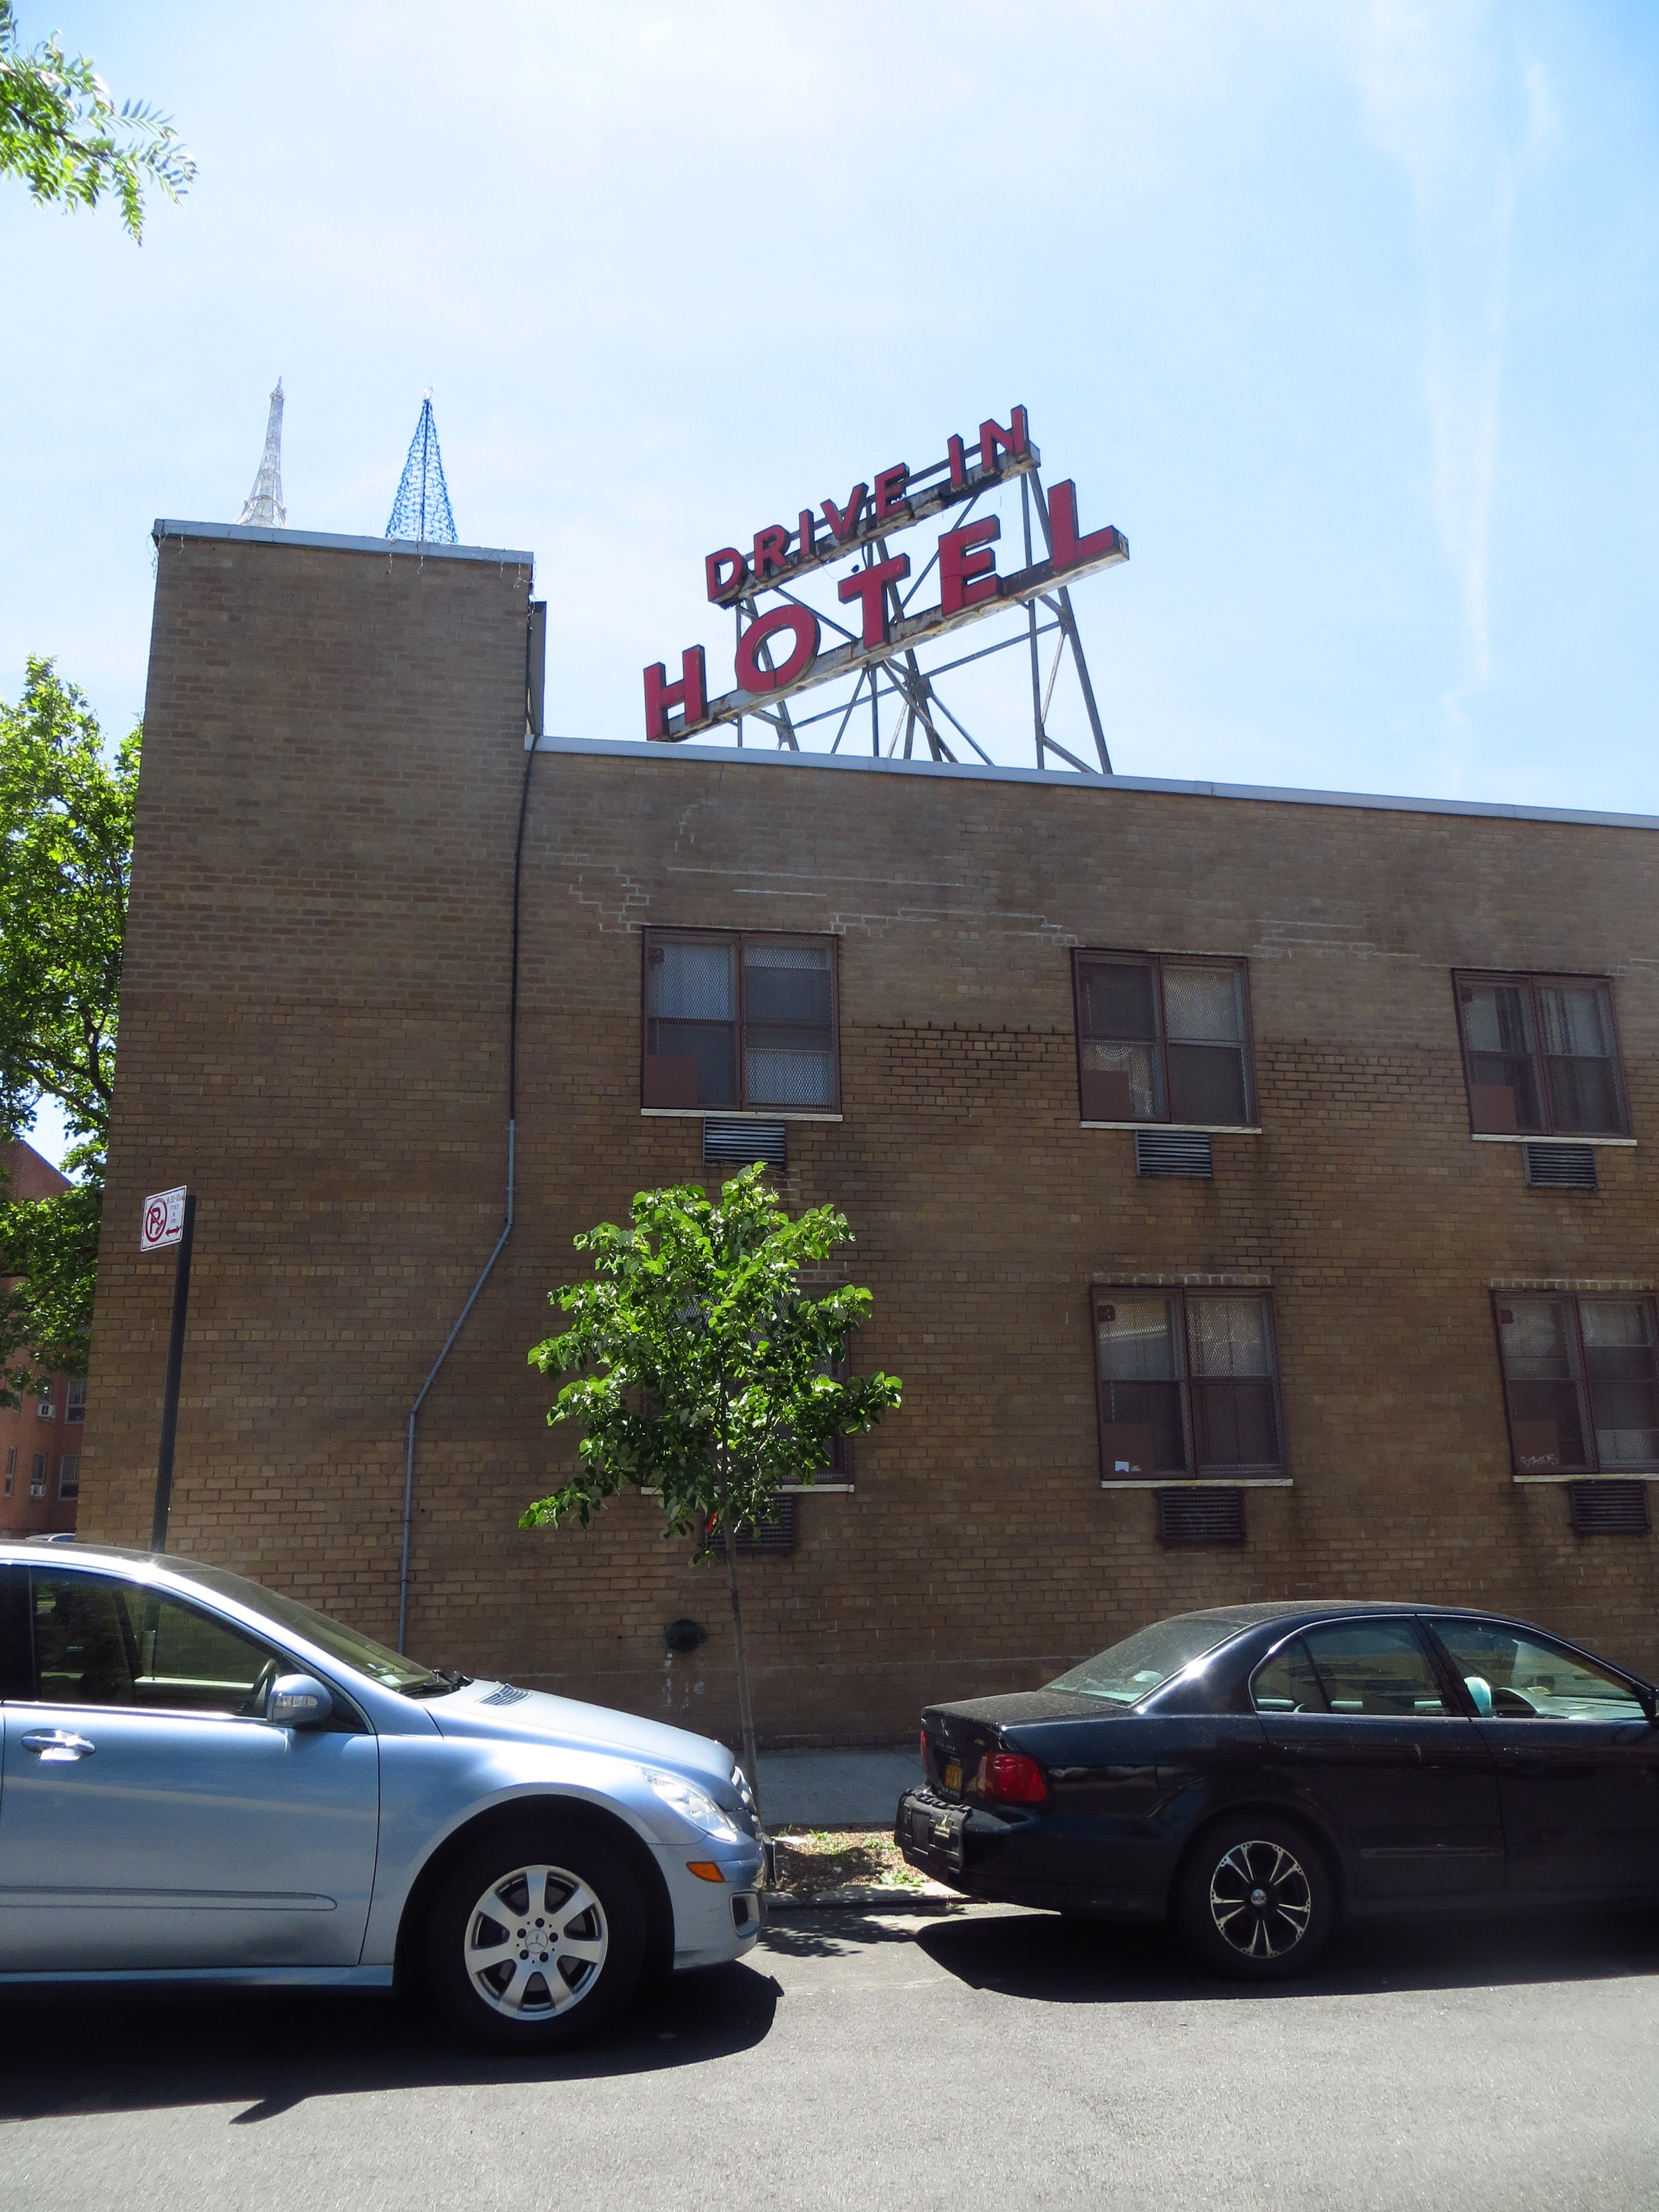 Otherwise known as a motel